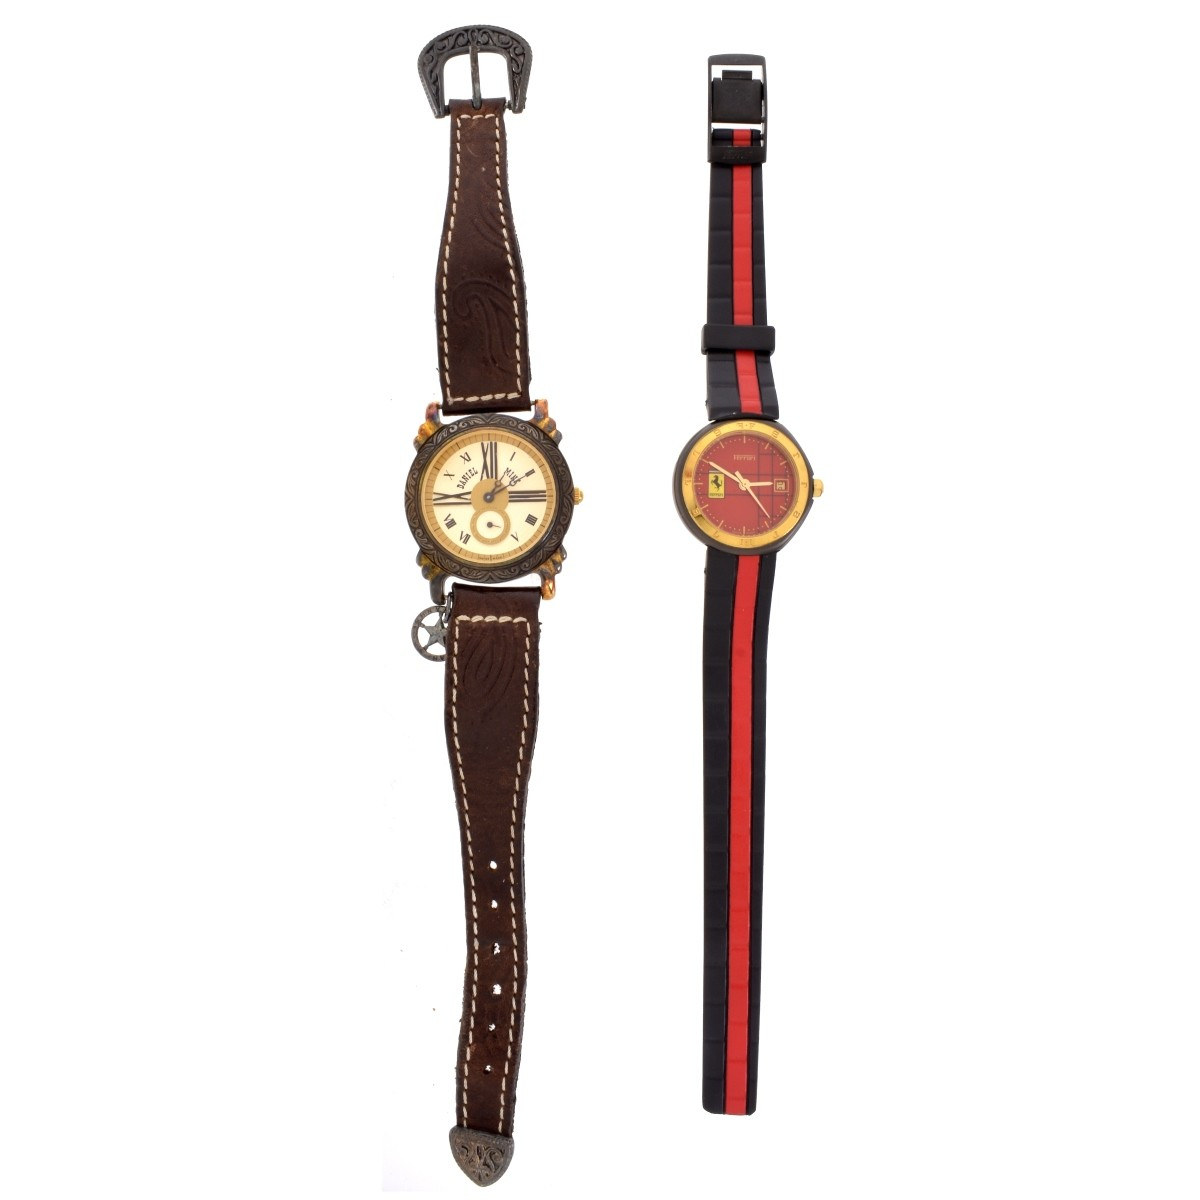 Two Lady's Watches